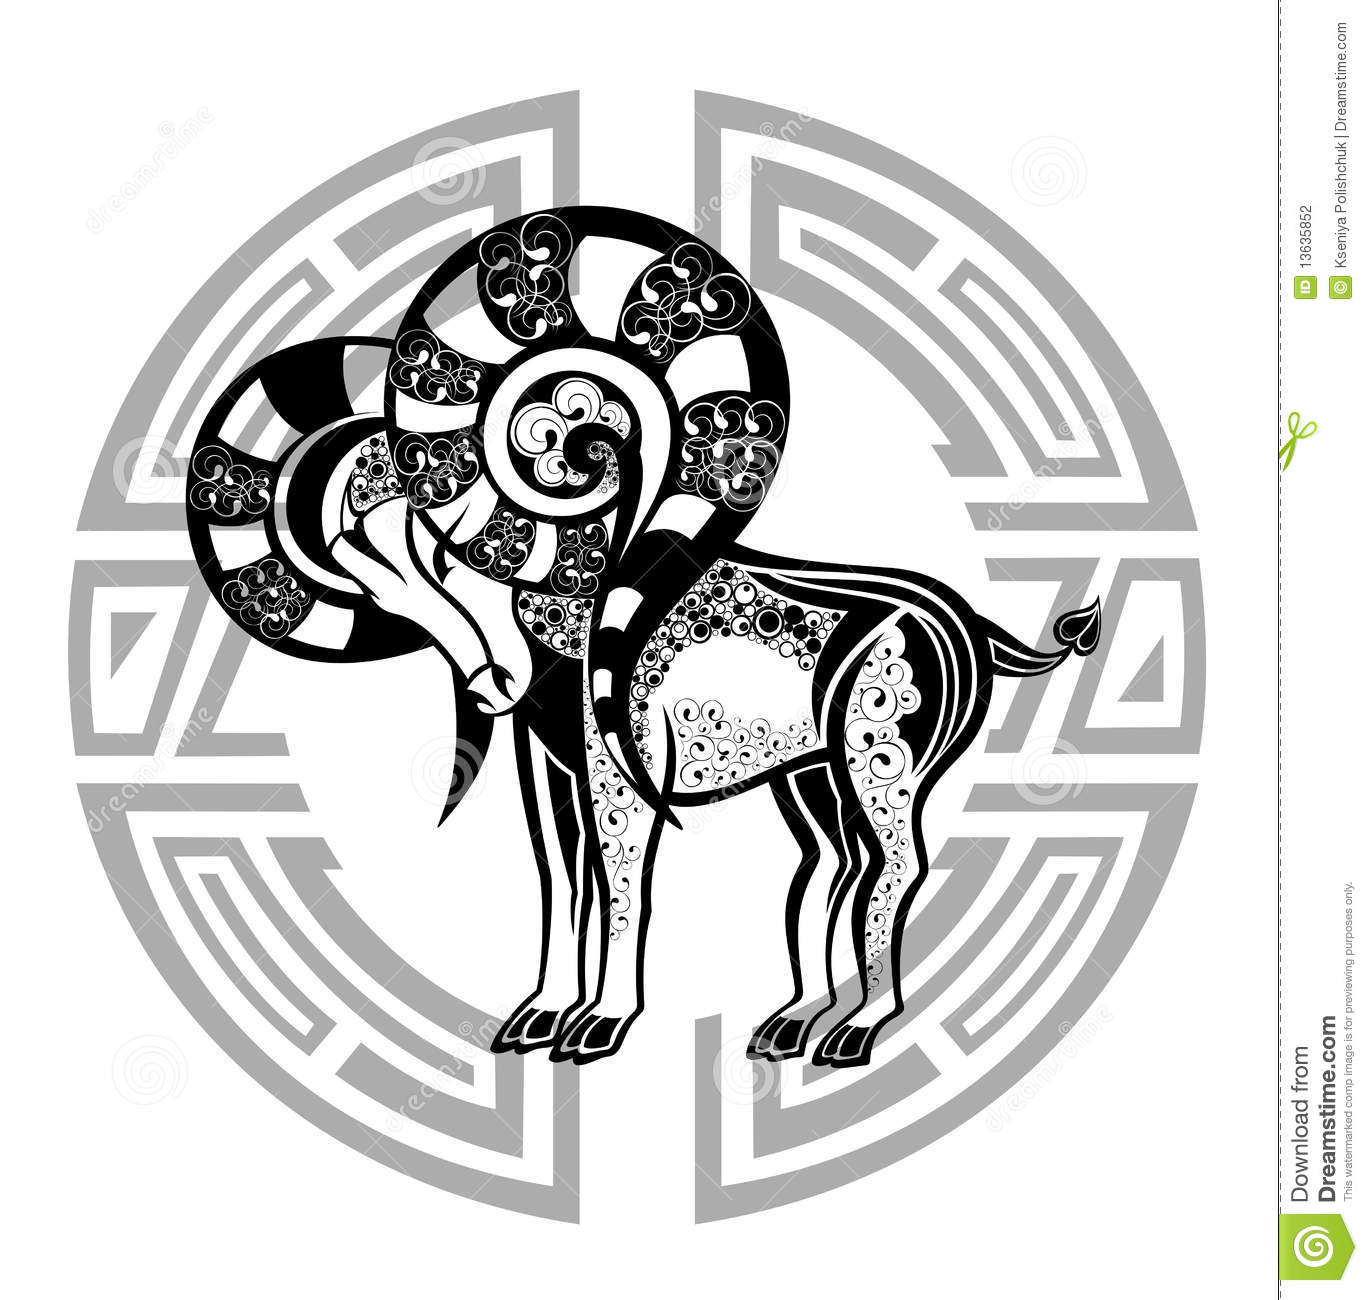 30059fd3f Zodiac Whell With Sign Of Aries. Tattoo Design. Stock Vector ...